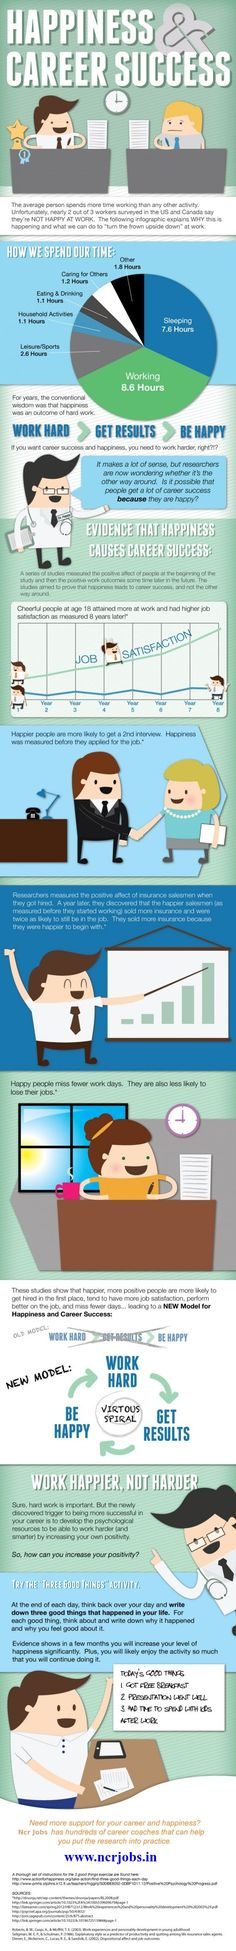 Happiness and success go hand in hand. Is your office a 'happy place'?